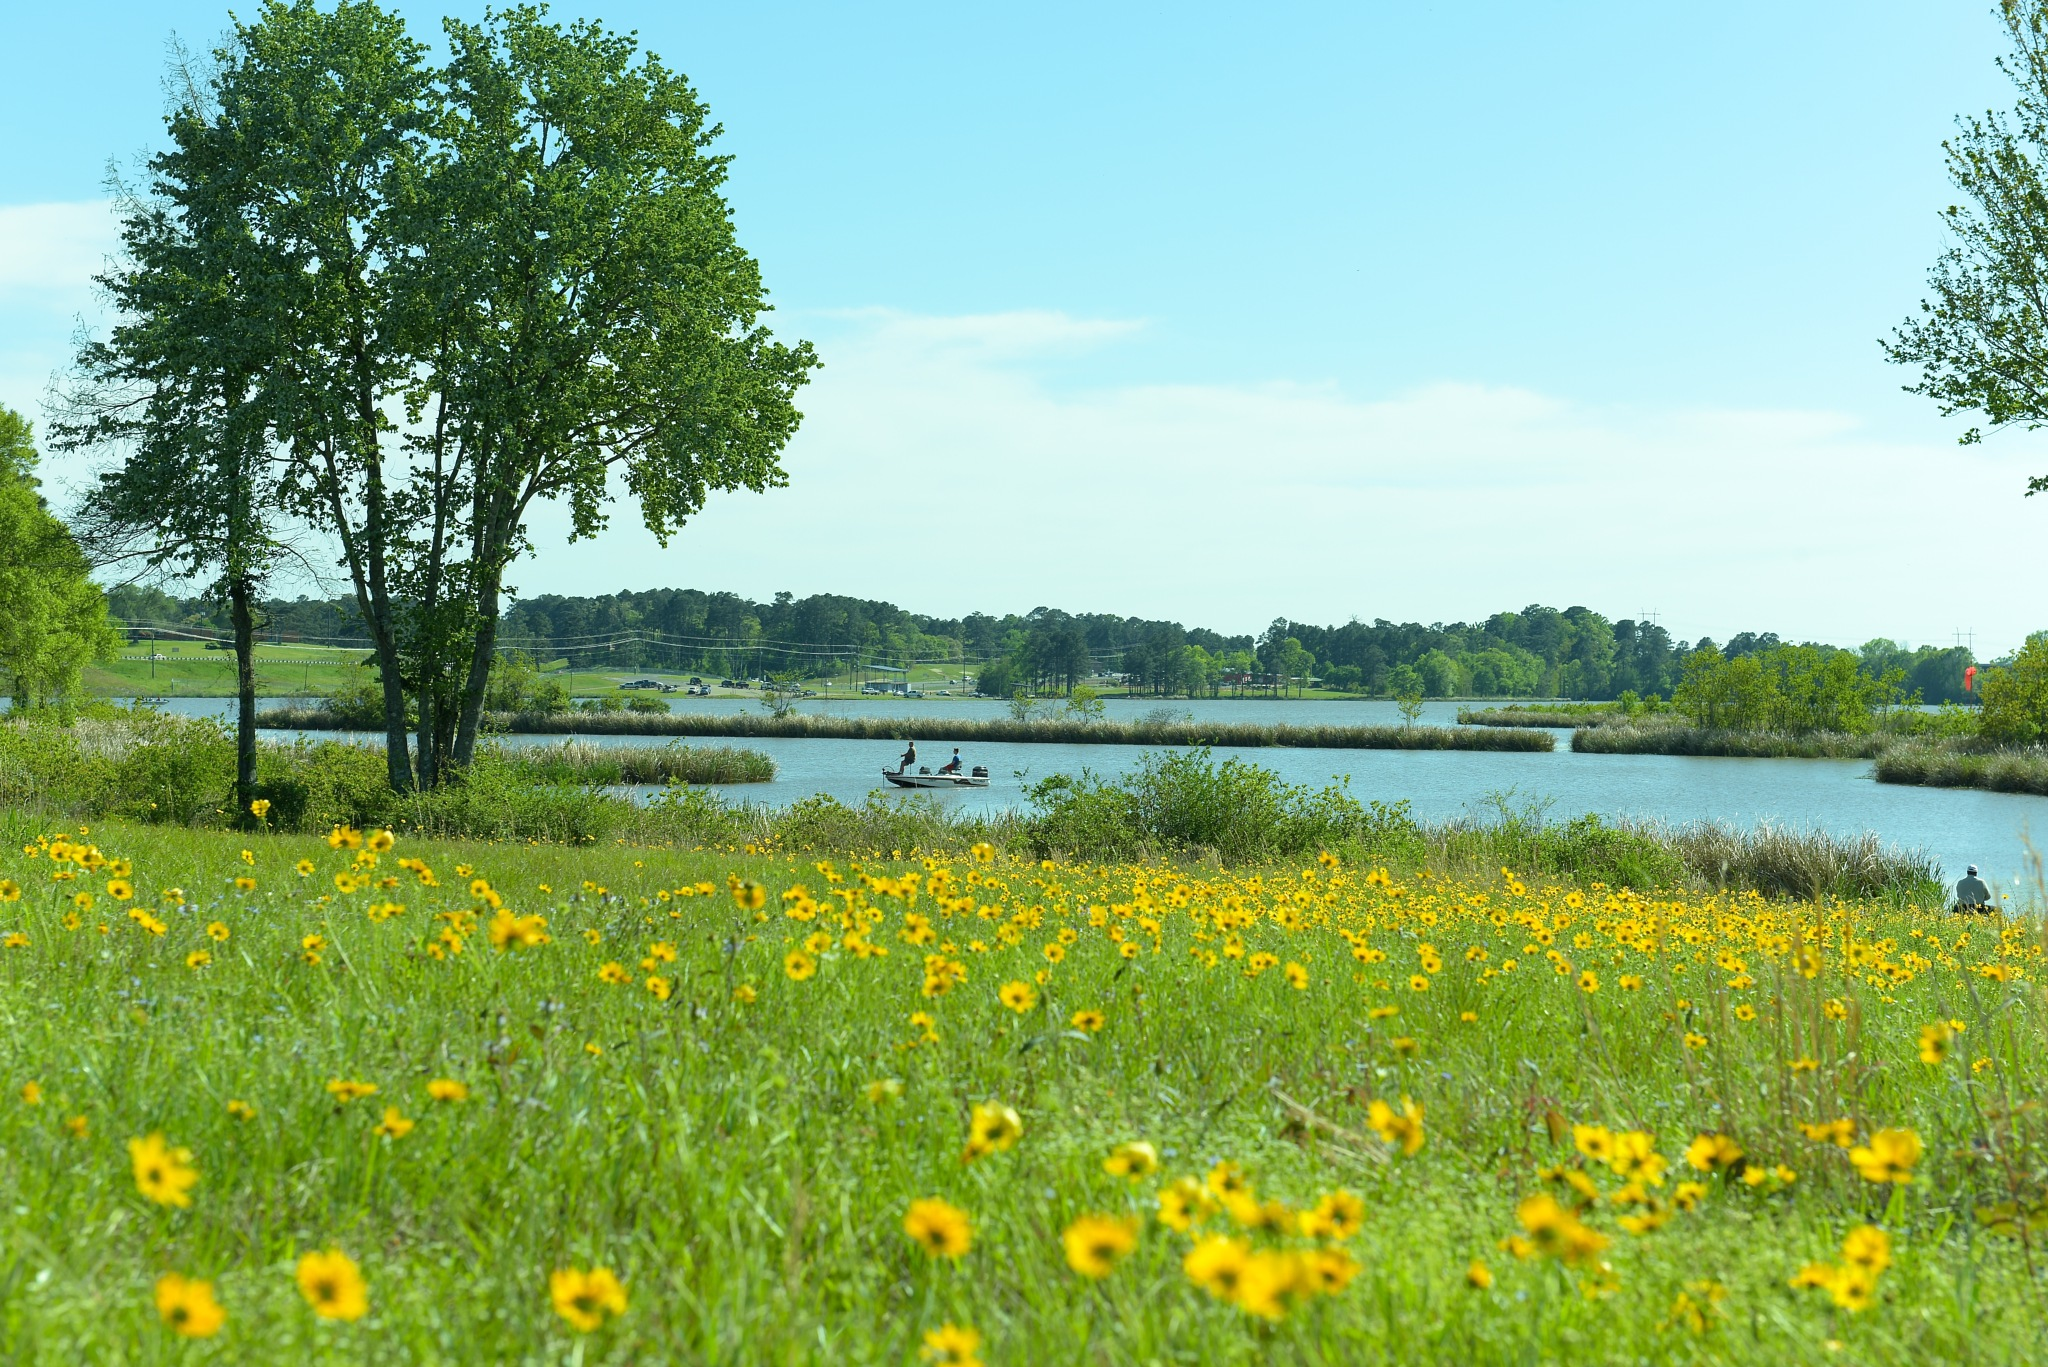 flowers and the Red River on a Spring day, March 30, 2018 by Liliane Sticher